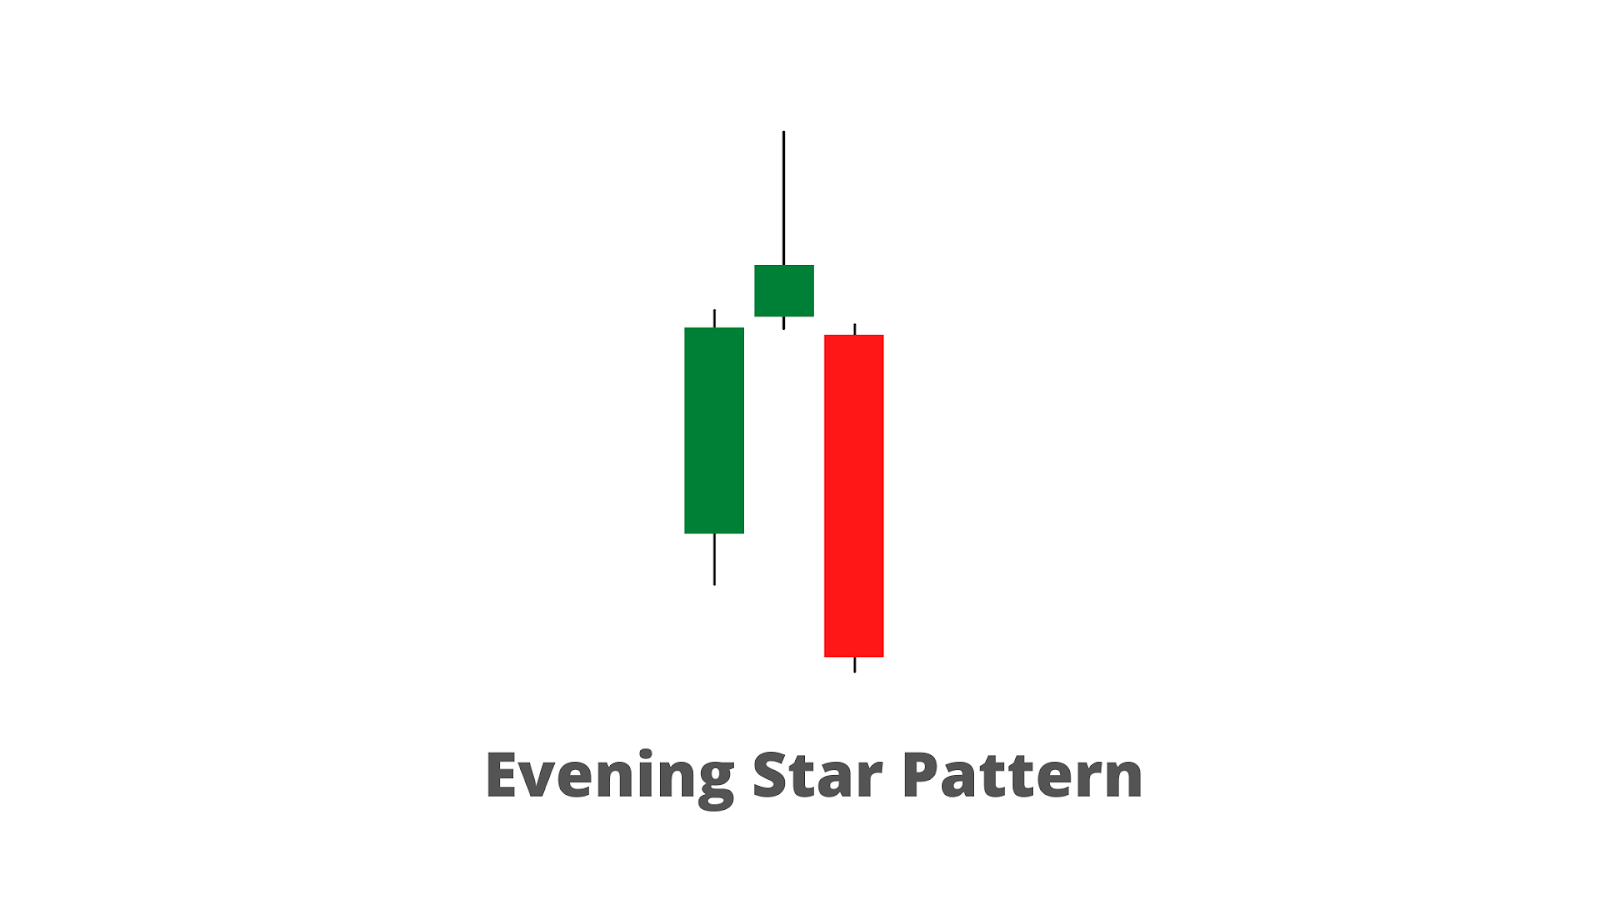 An evening star pattern formation.